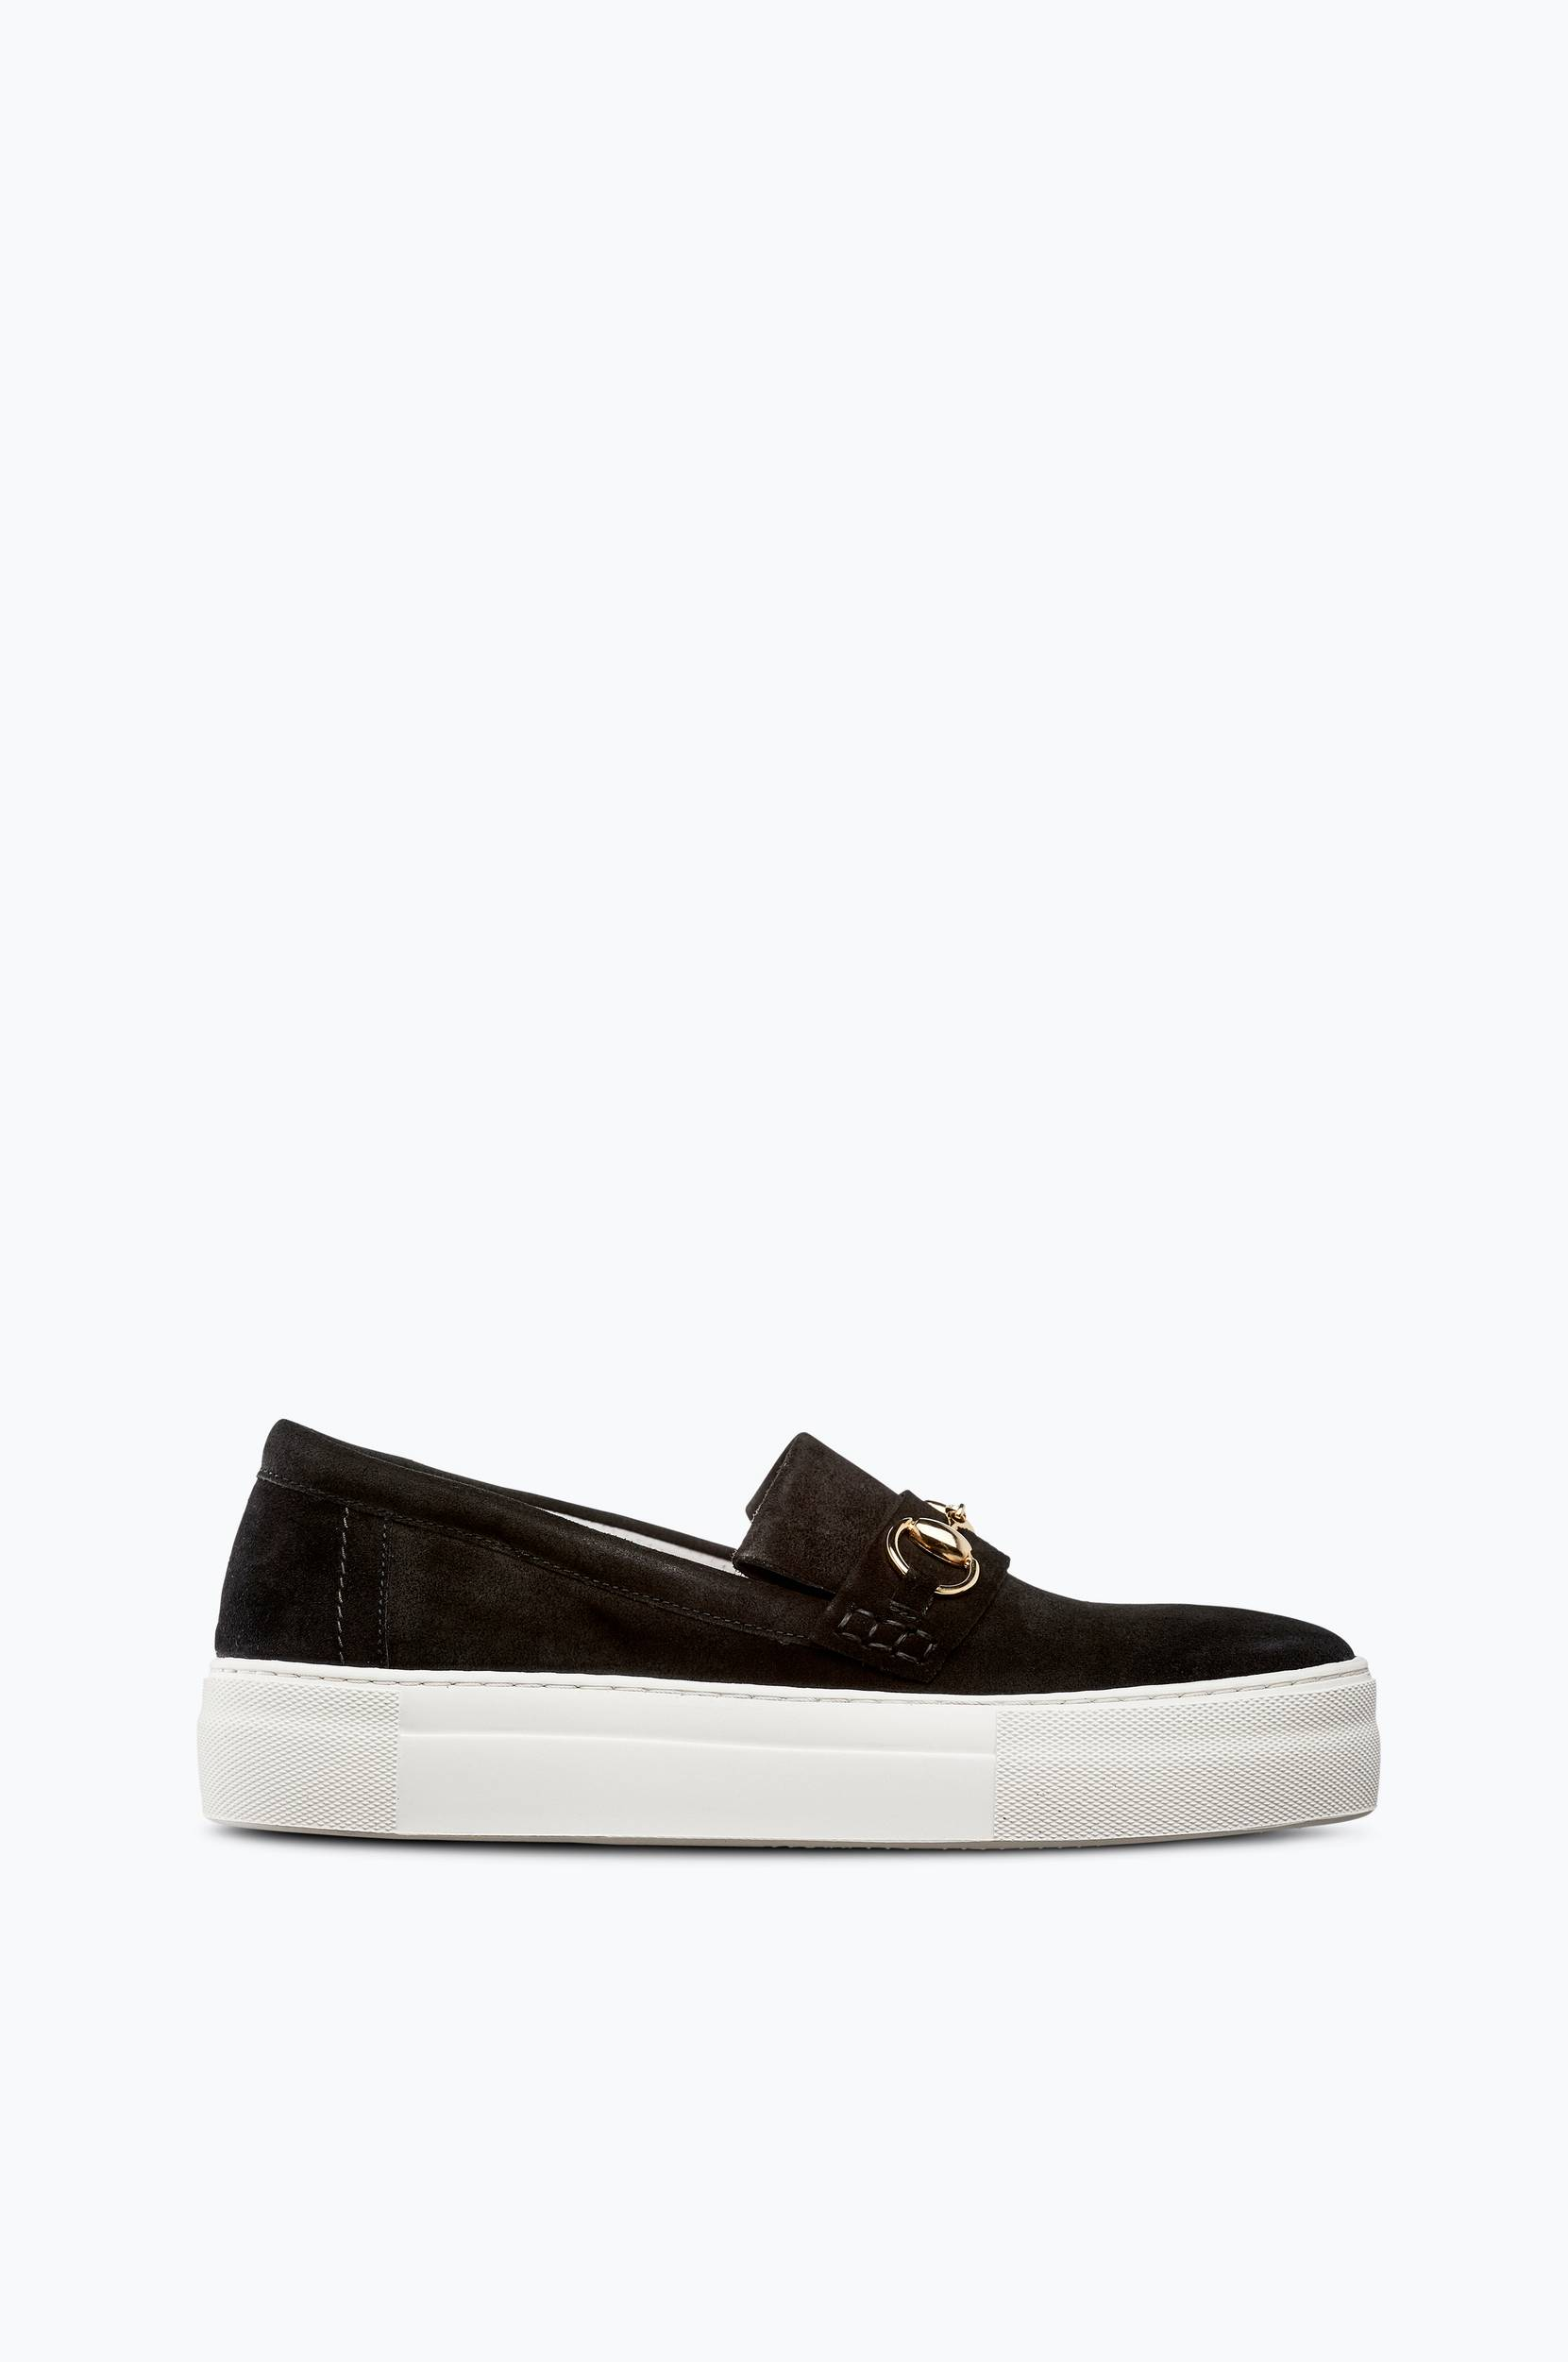 Sneakers slip-on billi bi Sneakers til Kvinder i Sort